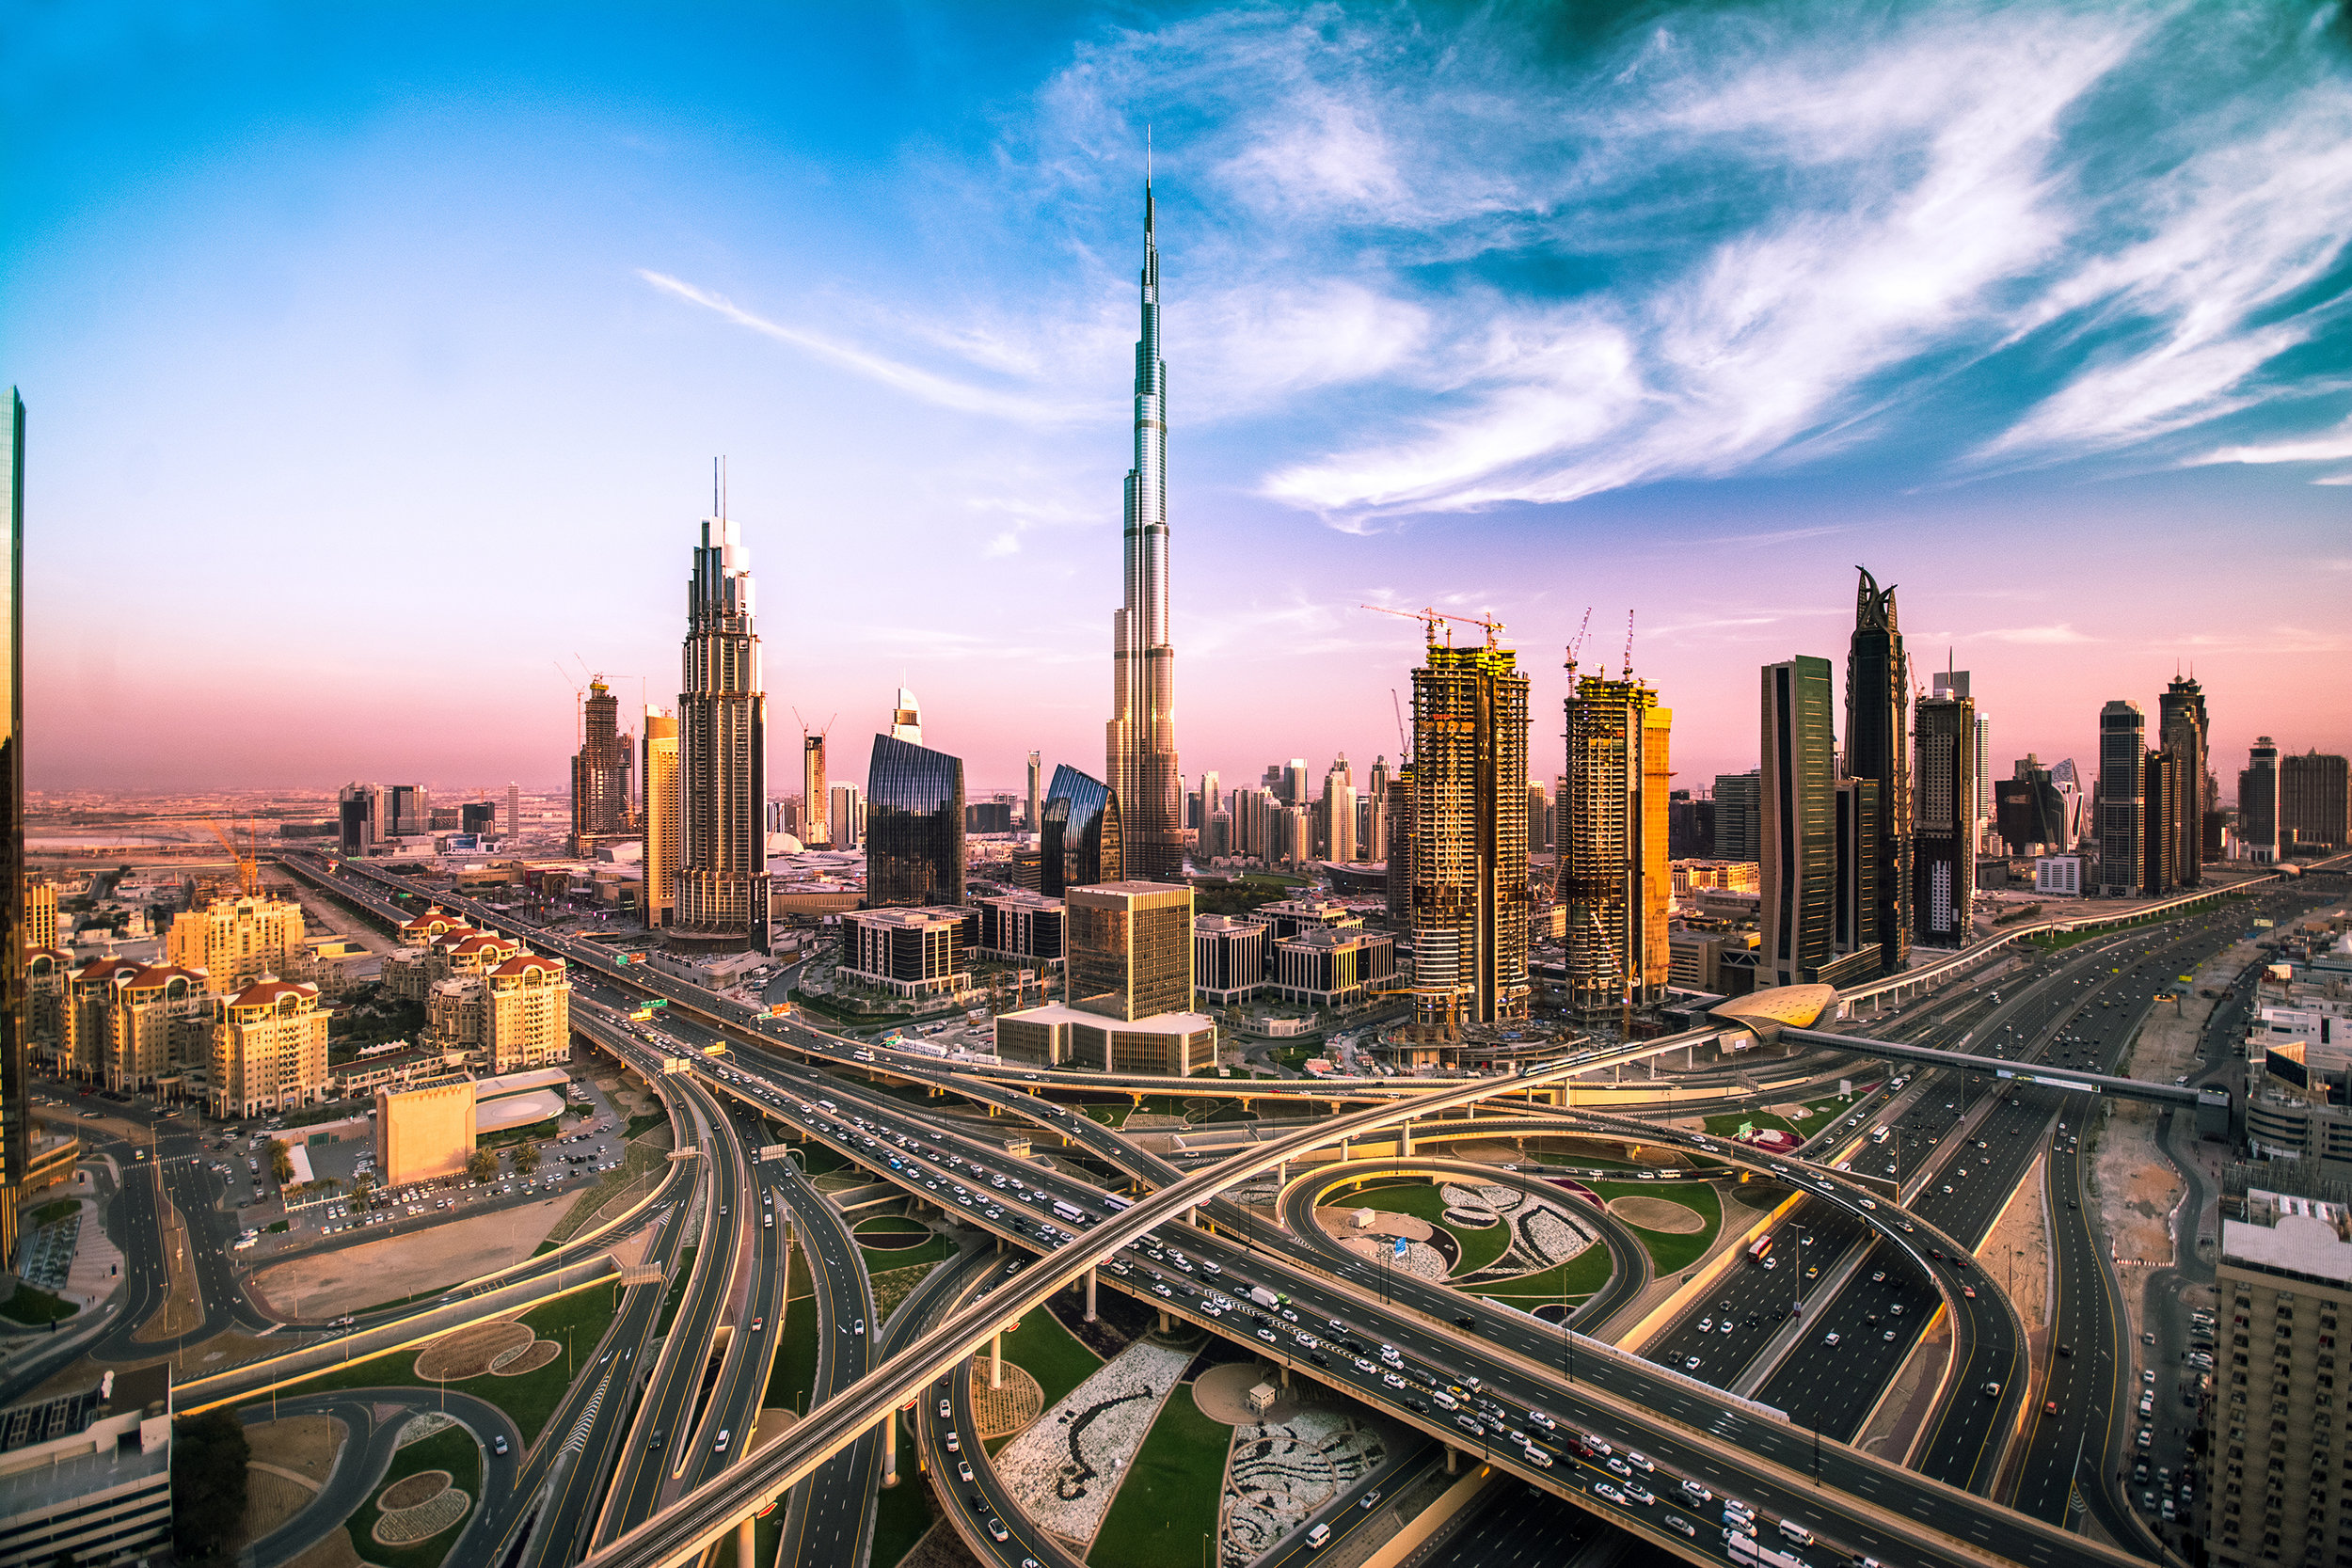 Why the UAE? - Leading Innovation. Income Tax-Free. Safety. Hospitality. Discover some of the top reasons why Dubai and the UAE among top ranked countries in the world!